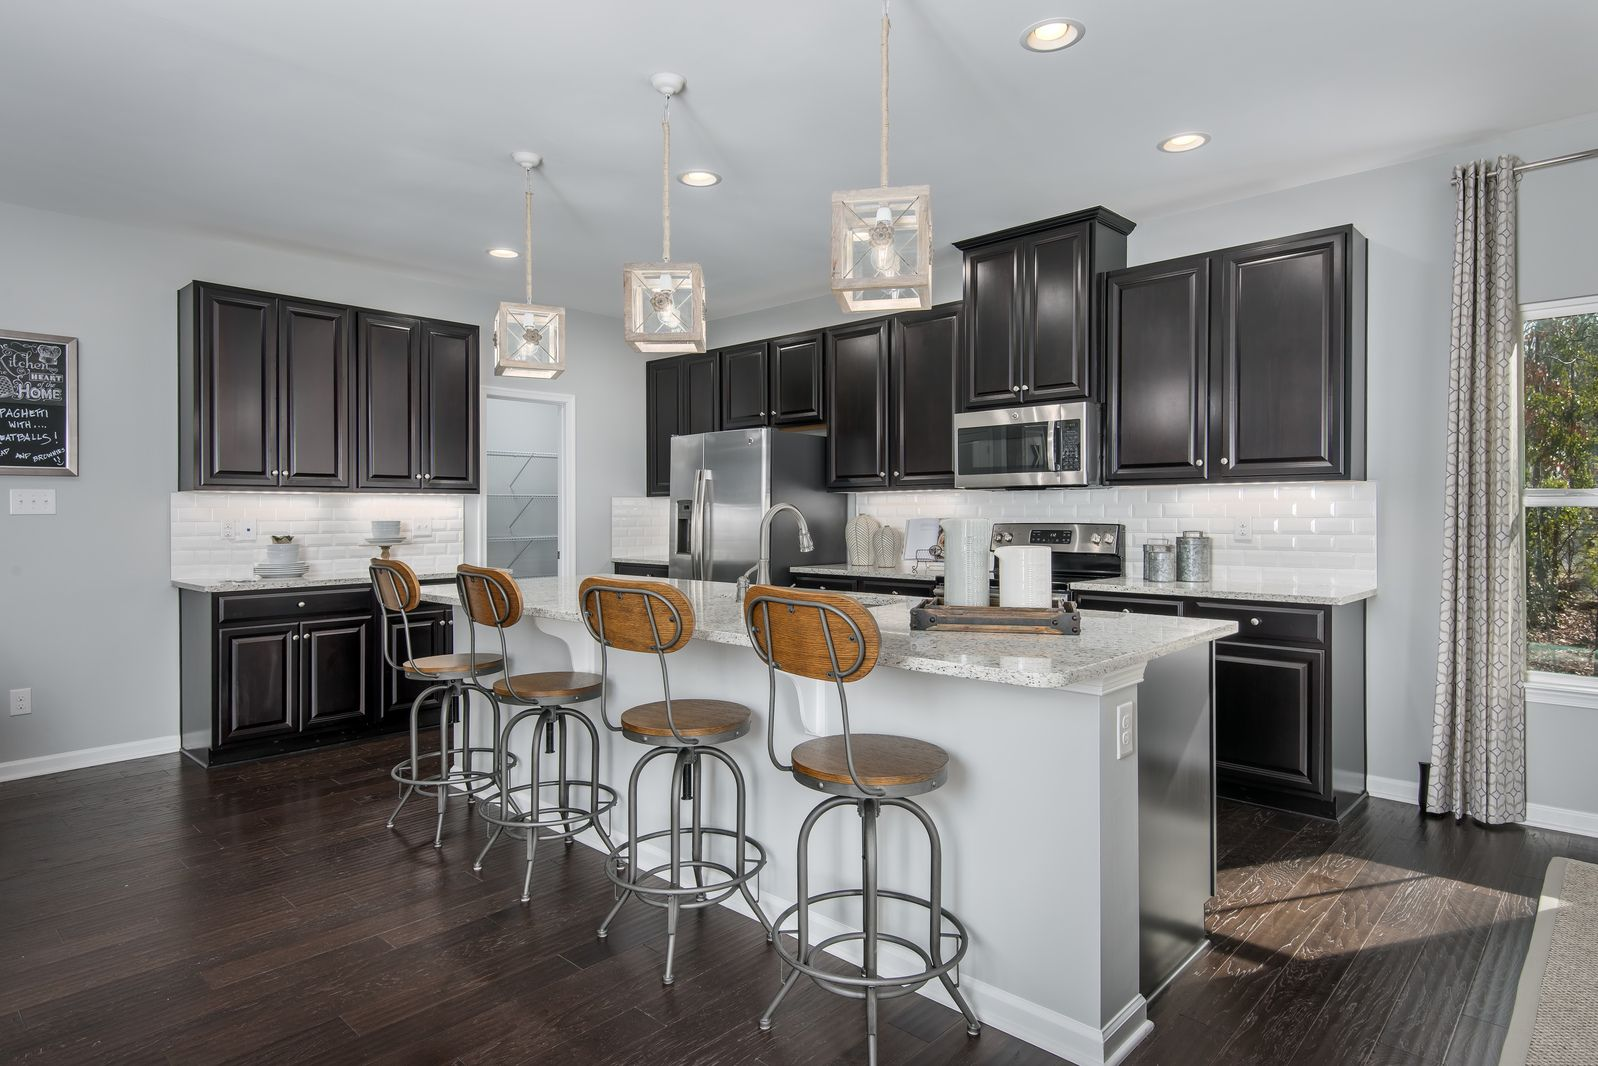 Kitchen featured in the Genoa By HeartlandHomes in Morgantown, WV